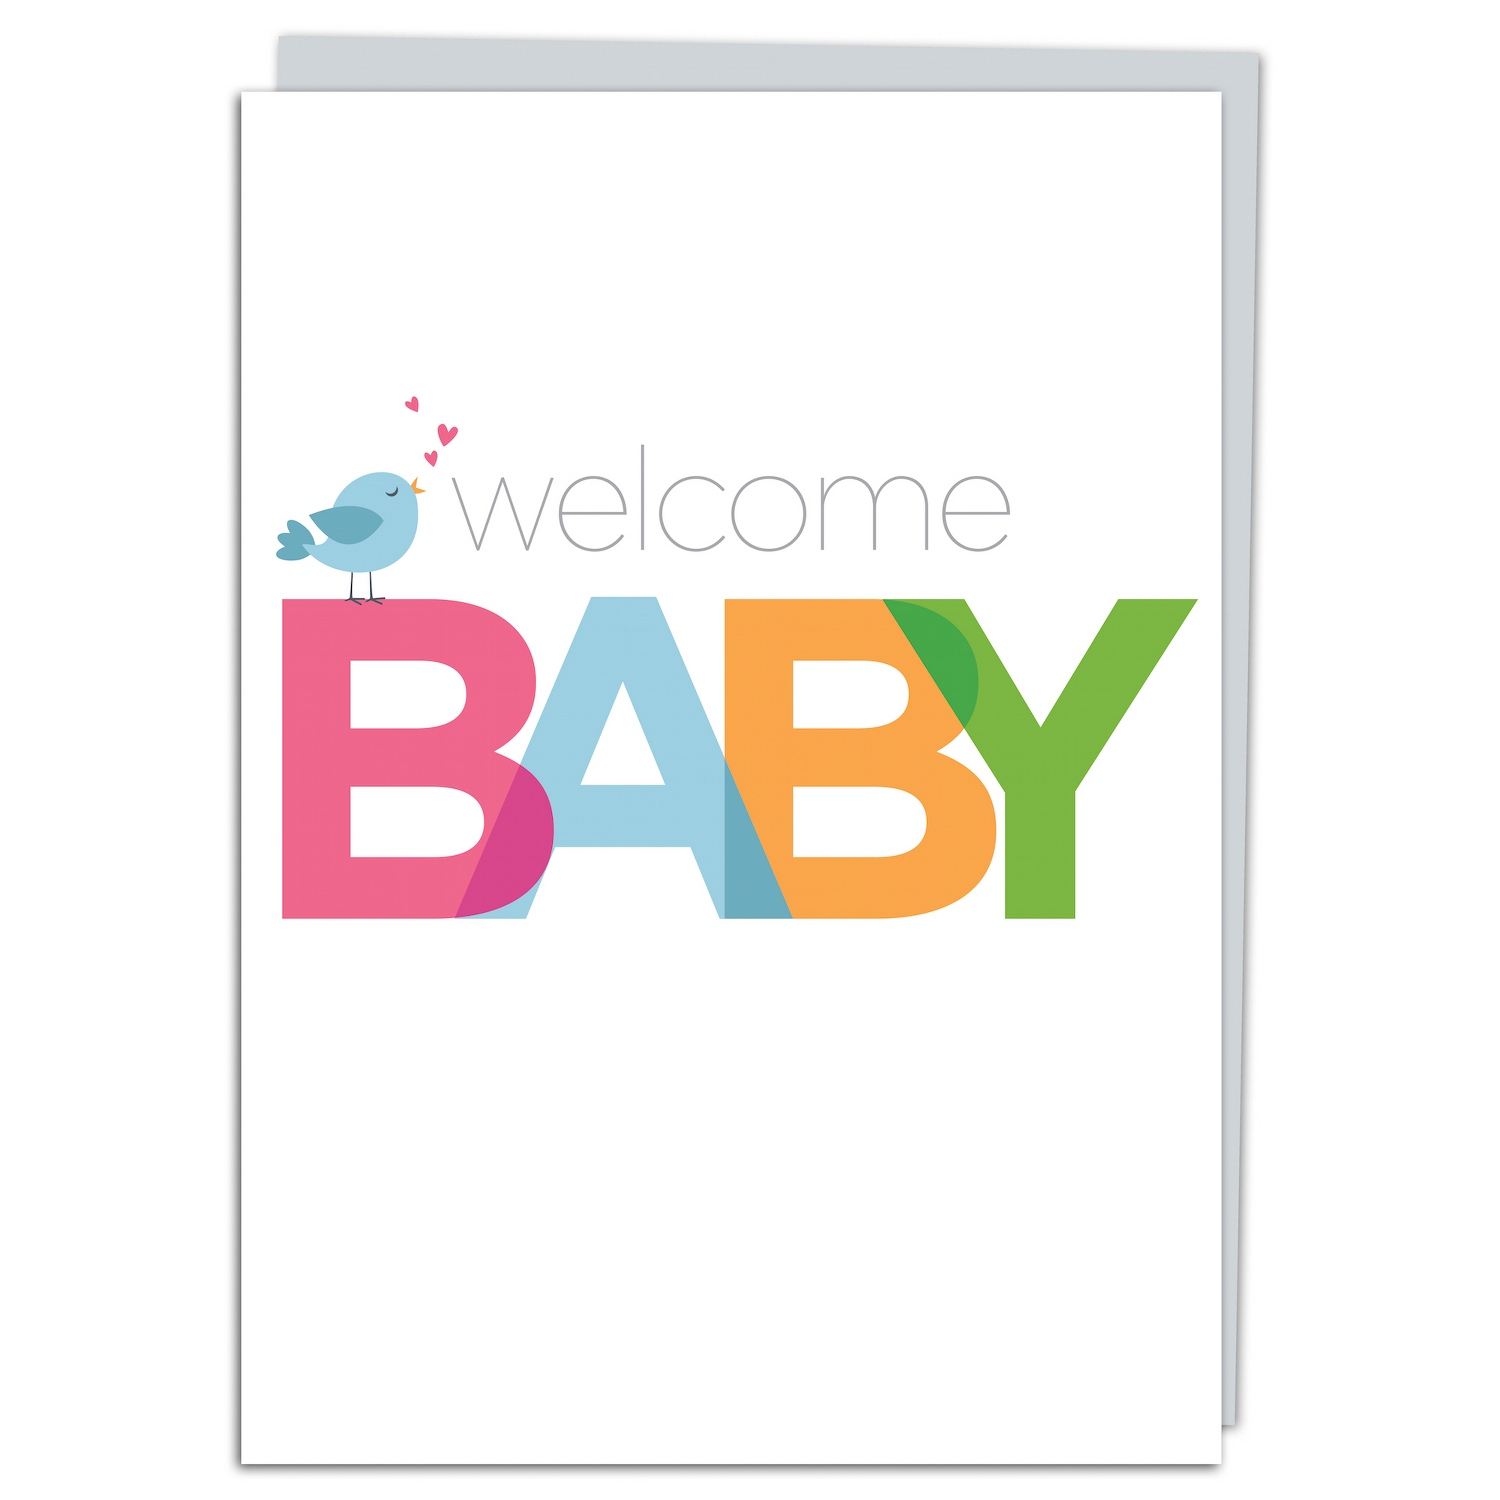 Welcome Baby Bird Greeting Card